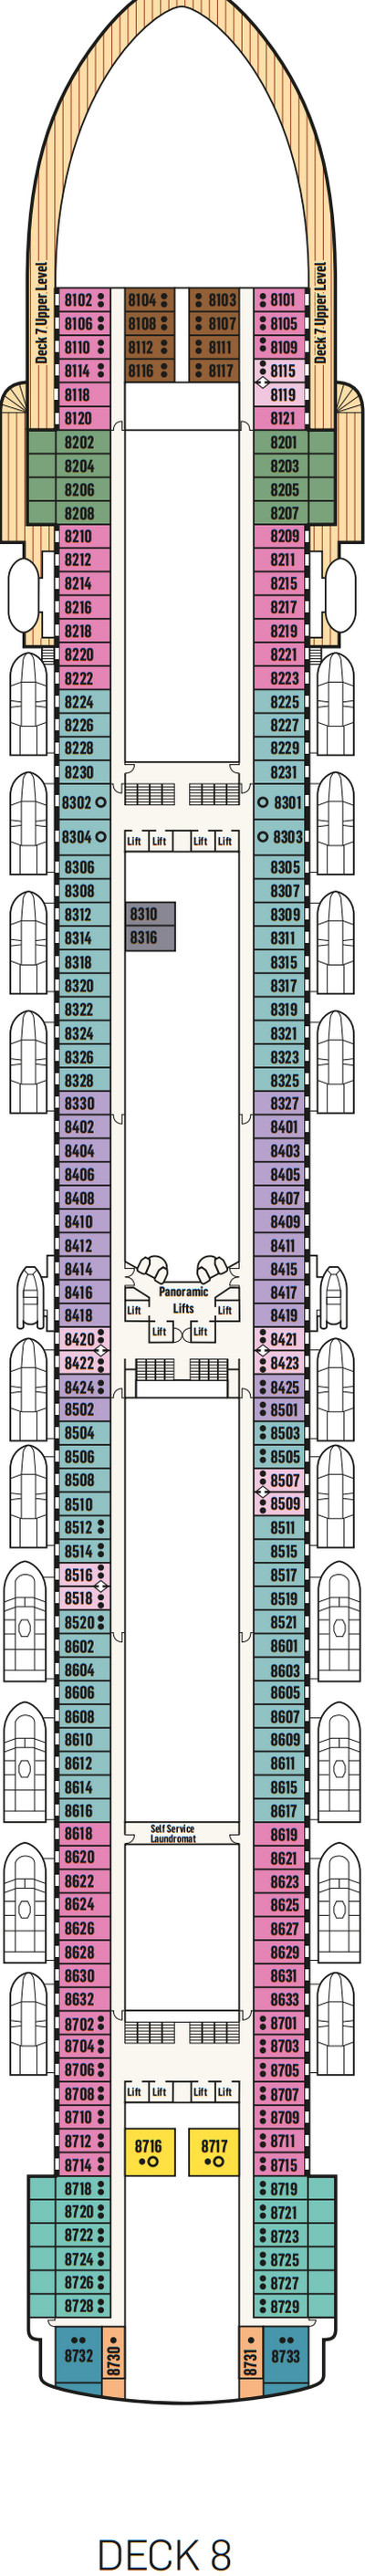 P&O - Pacific Adventure Deck 8 layout